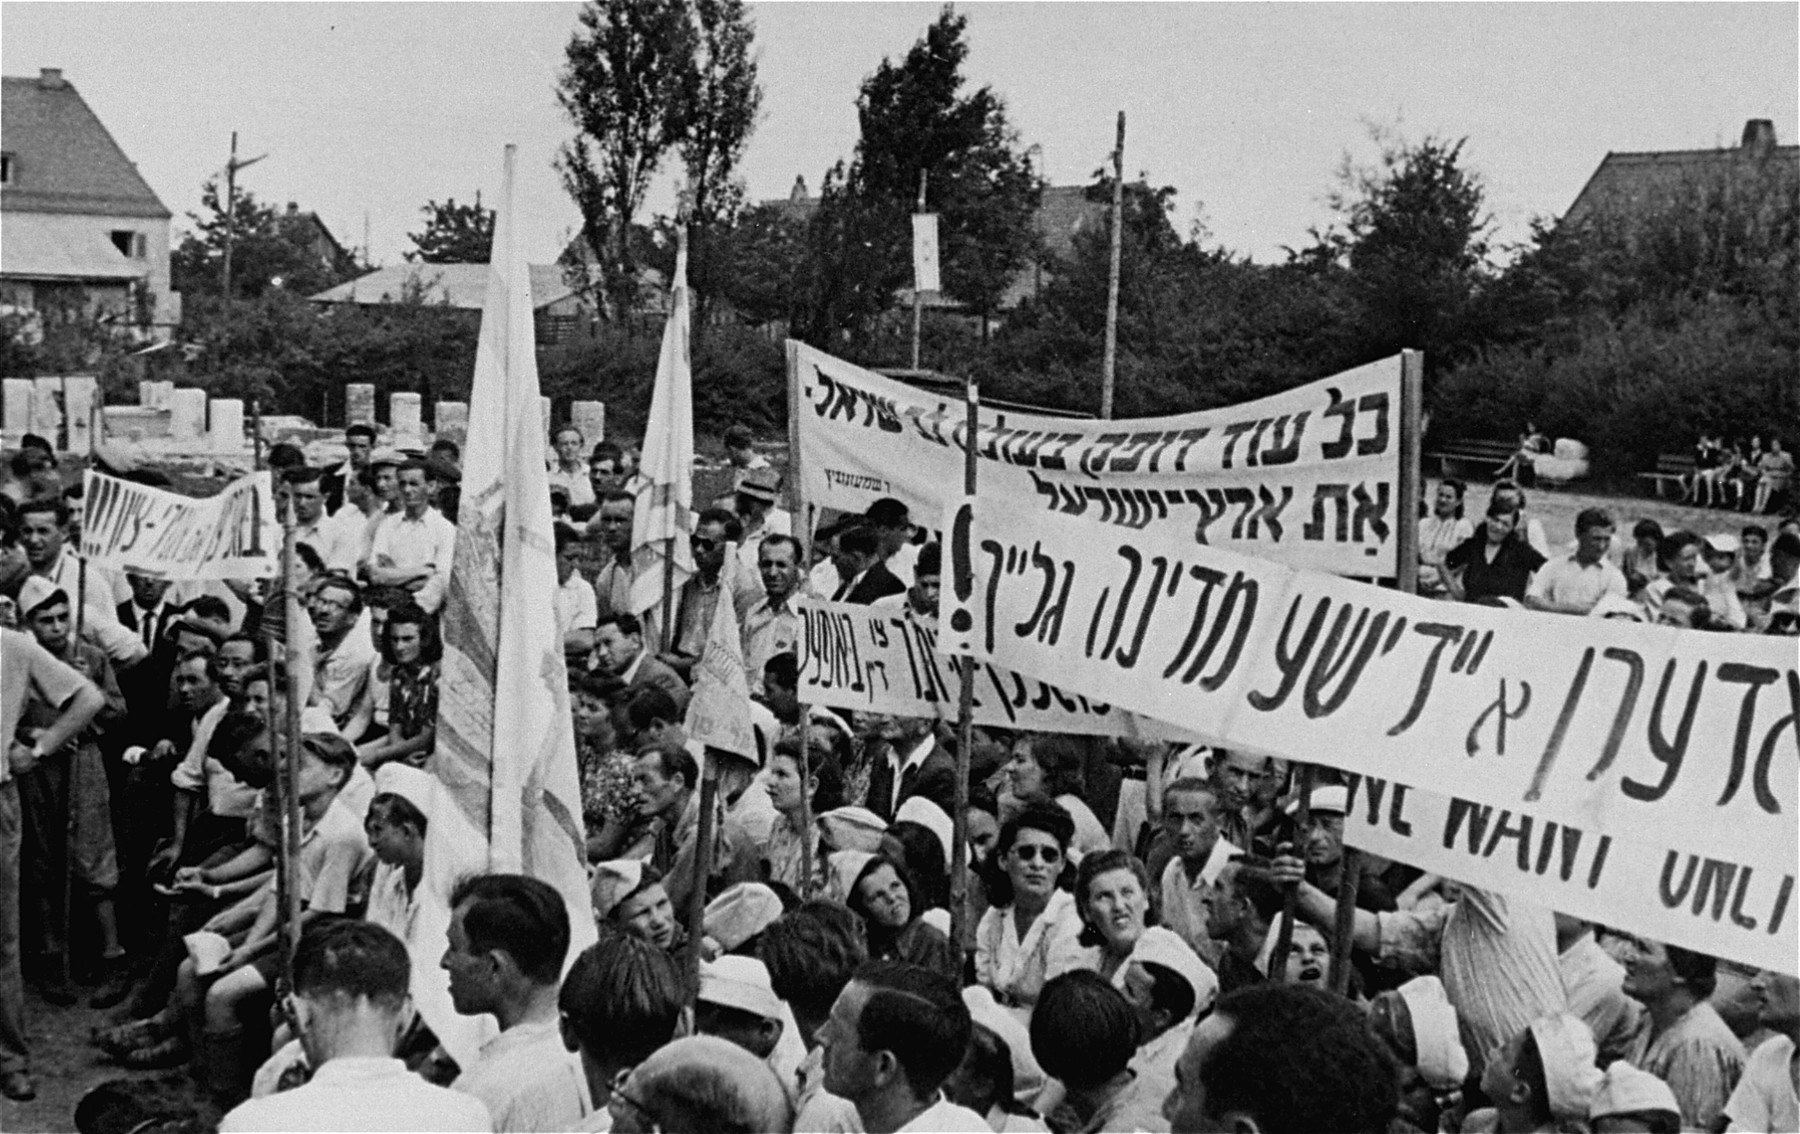 Jewish DPs hold flags and banners during a Zionist demonstration at the Neu Freimann displaced persons camp.  The banners in Hebrew and Yiddish call for the establishment of a Jewish state in Palestine.